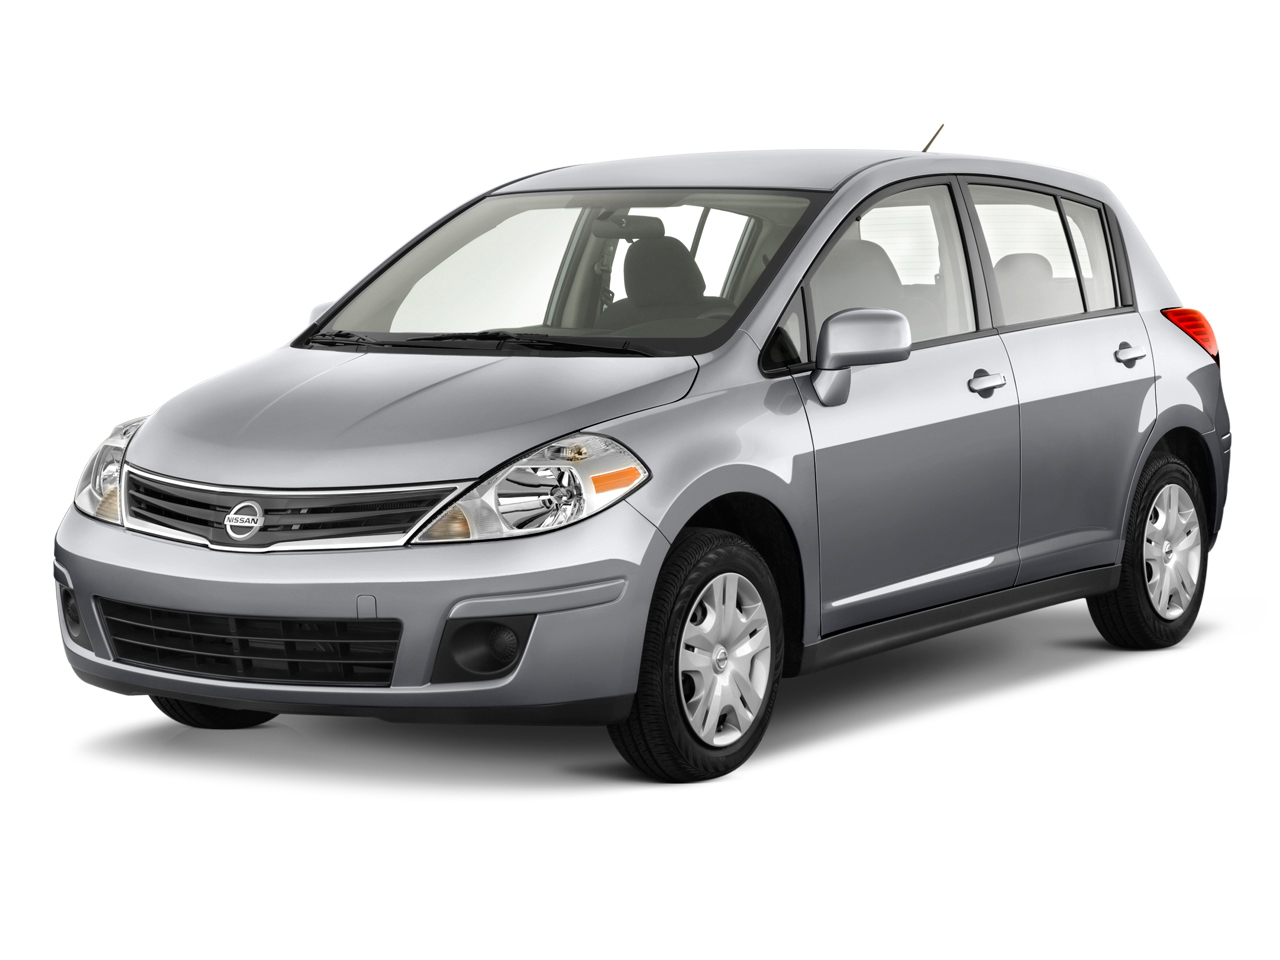 2011 Nissan Versa Review Ratings Specs Prices And